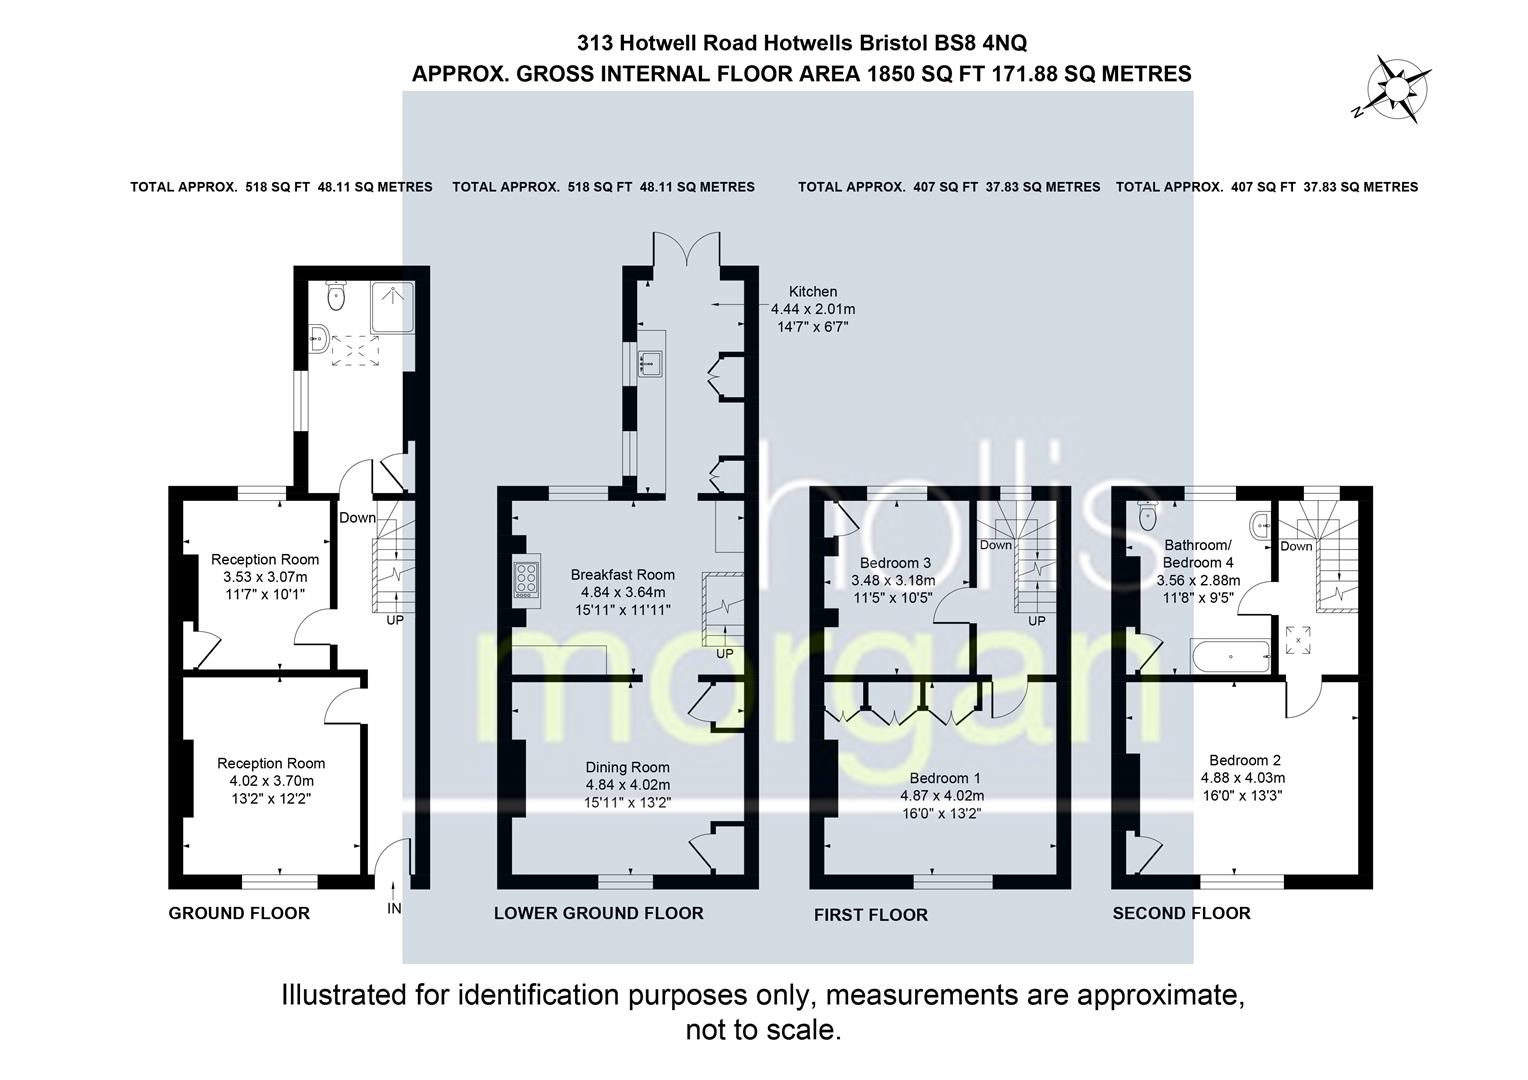 Floorplans For Dowry Parade, Hotwells